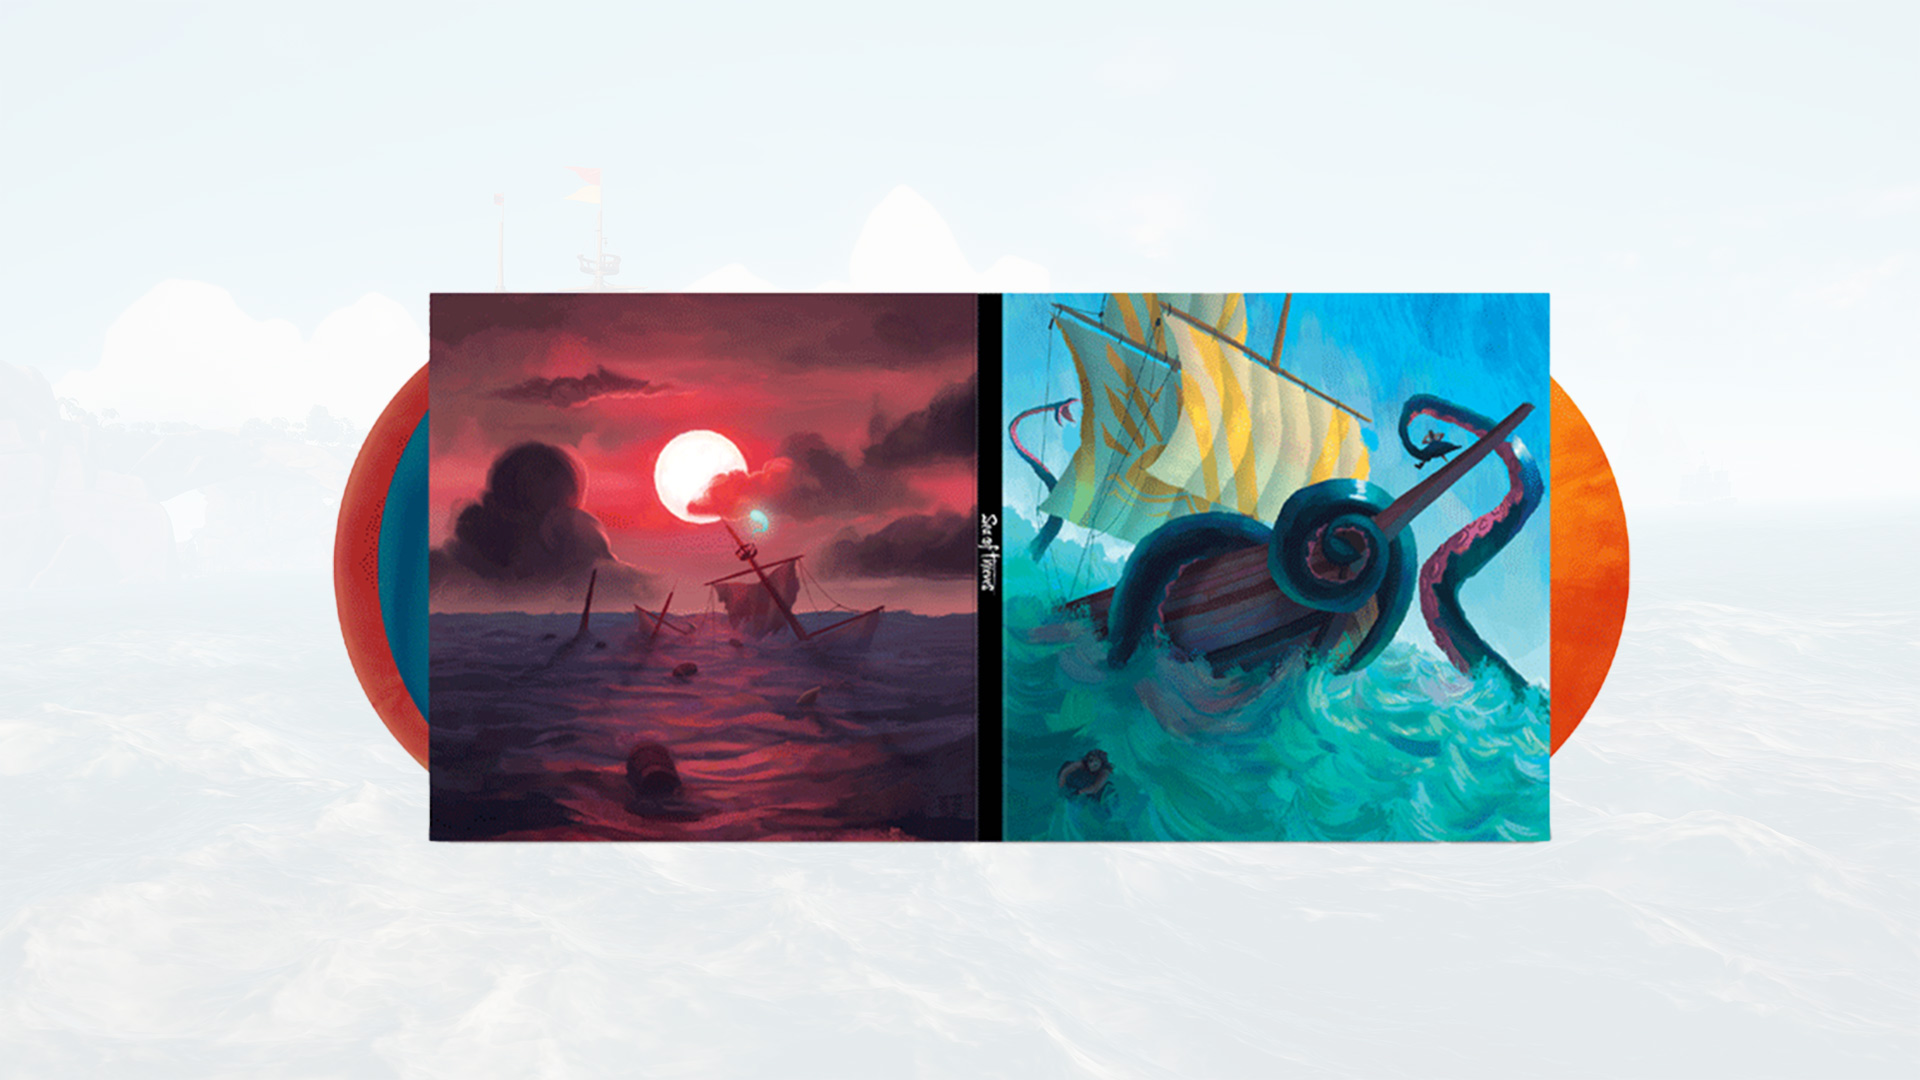 sea-of-thieves-vinyle-just-for-games-1